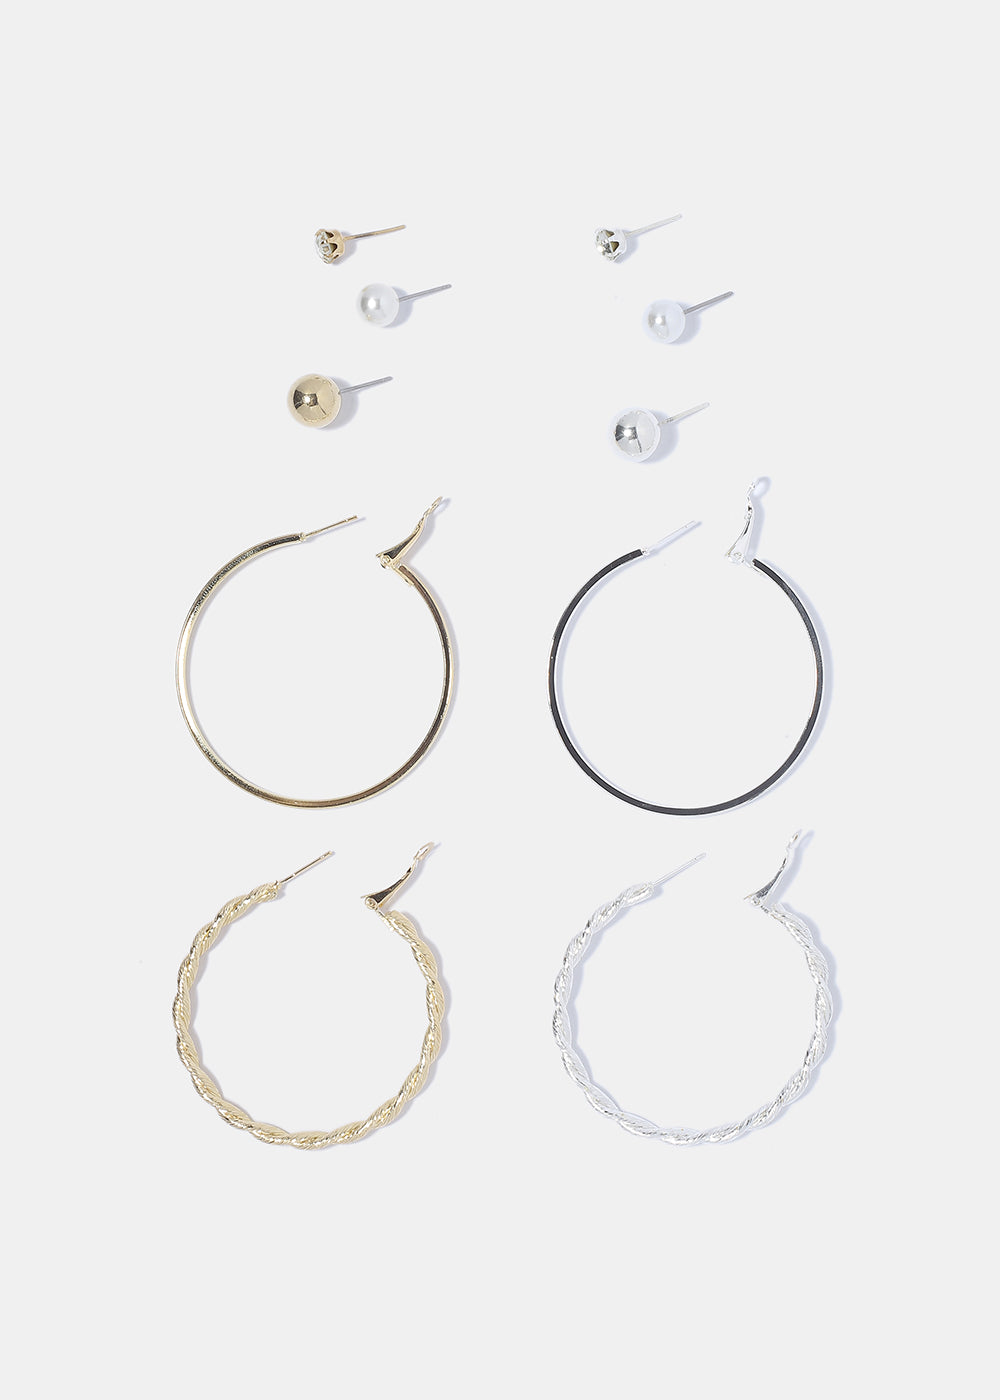 6 Pair Hoop & Stud Earring Set